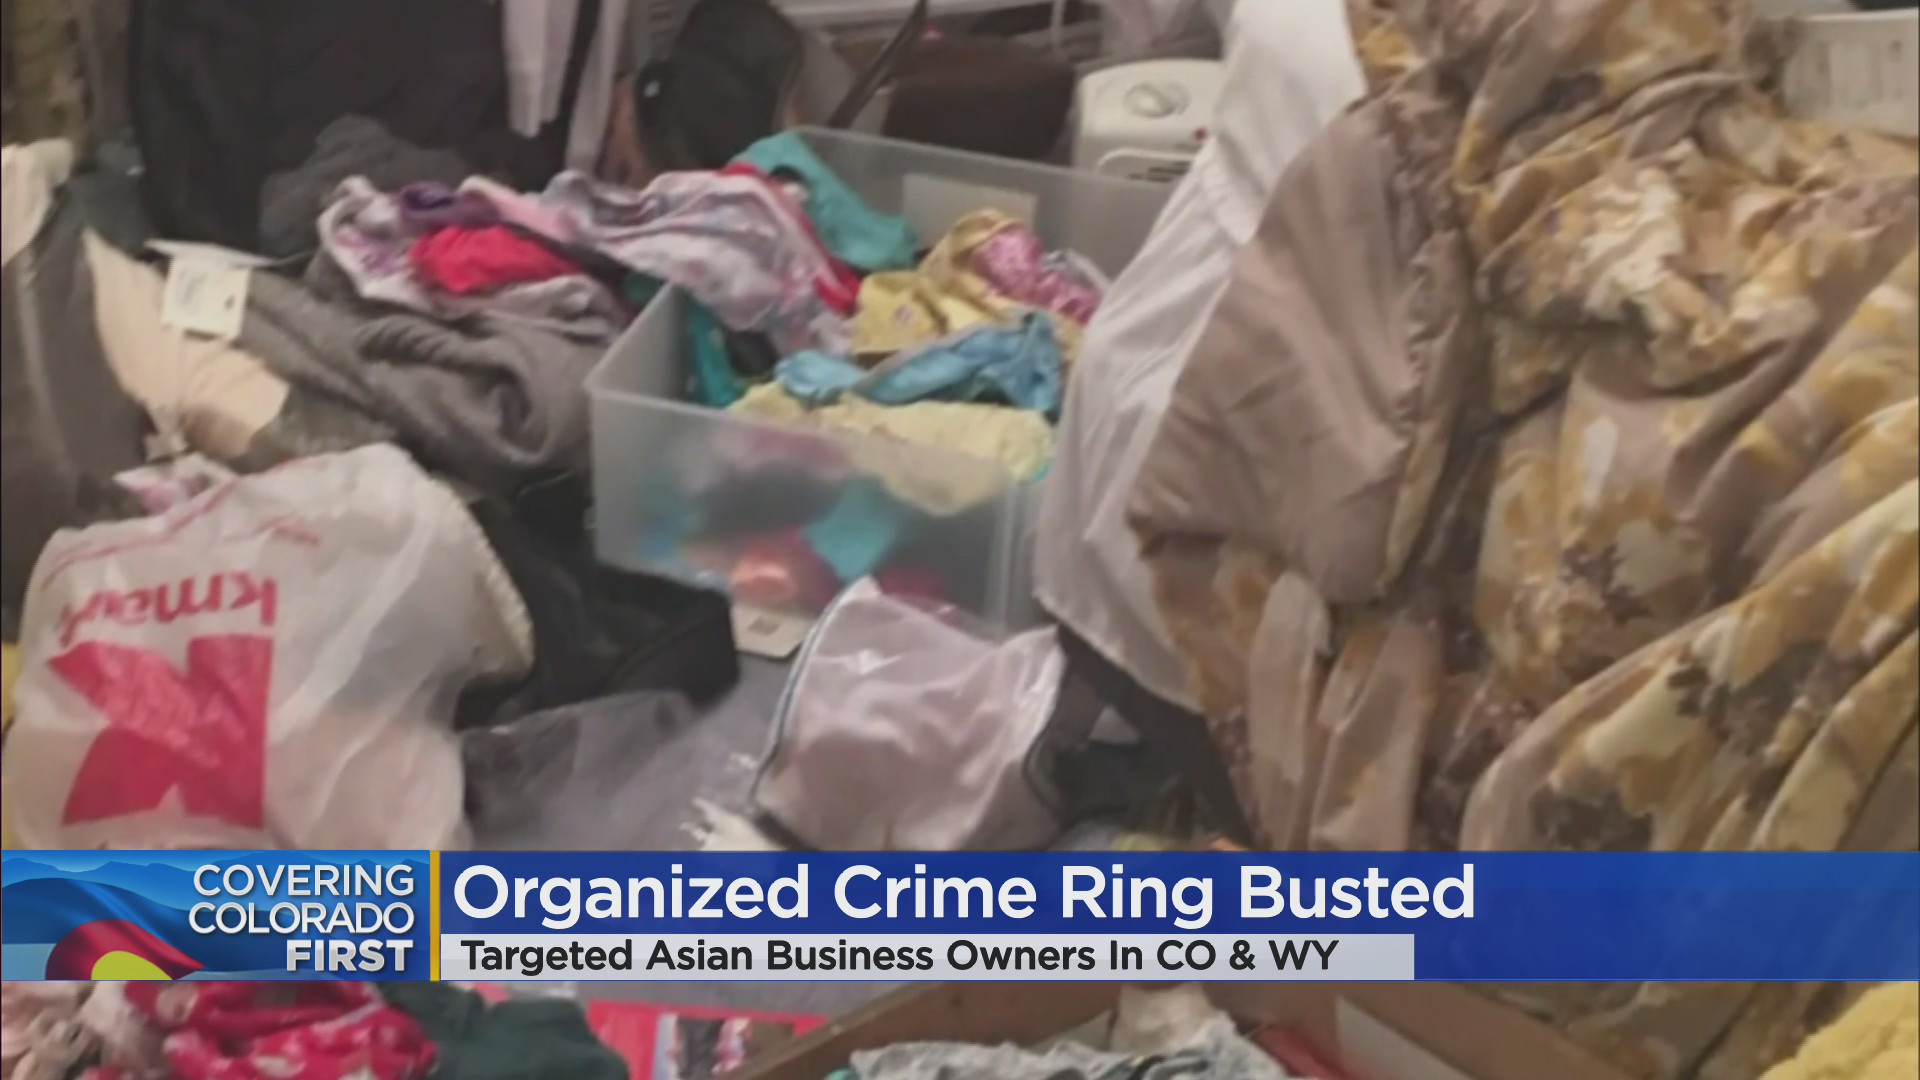 news.yahoo.com: Burglars Steal .4 Million From Asian Families In Colorado And Wyoming